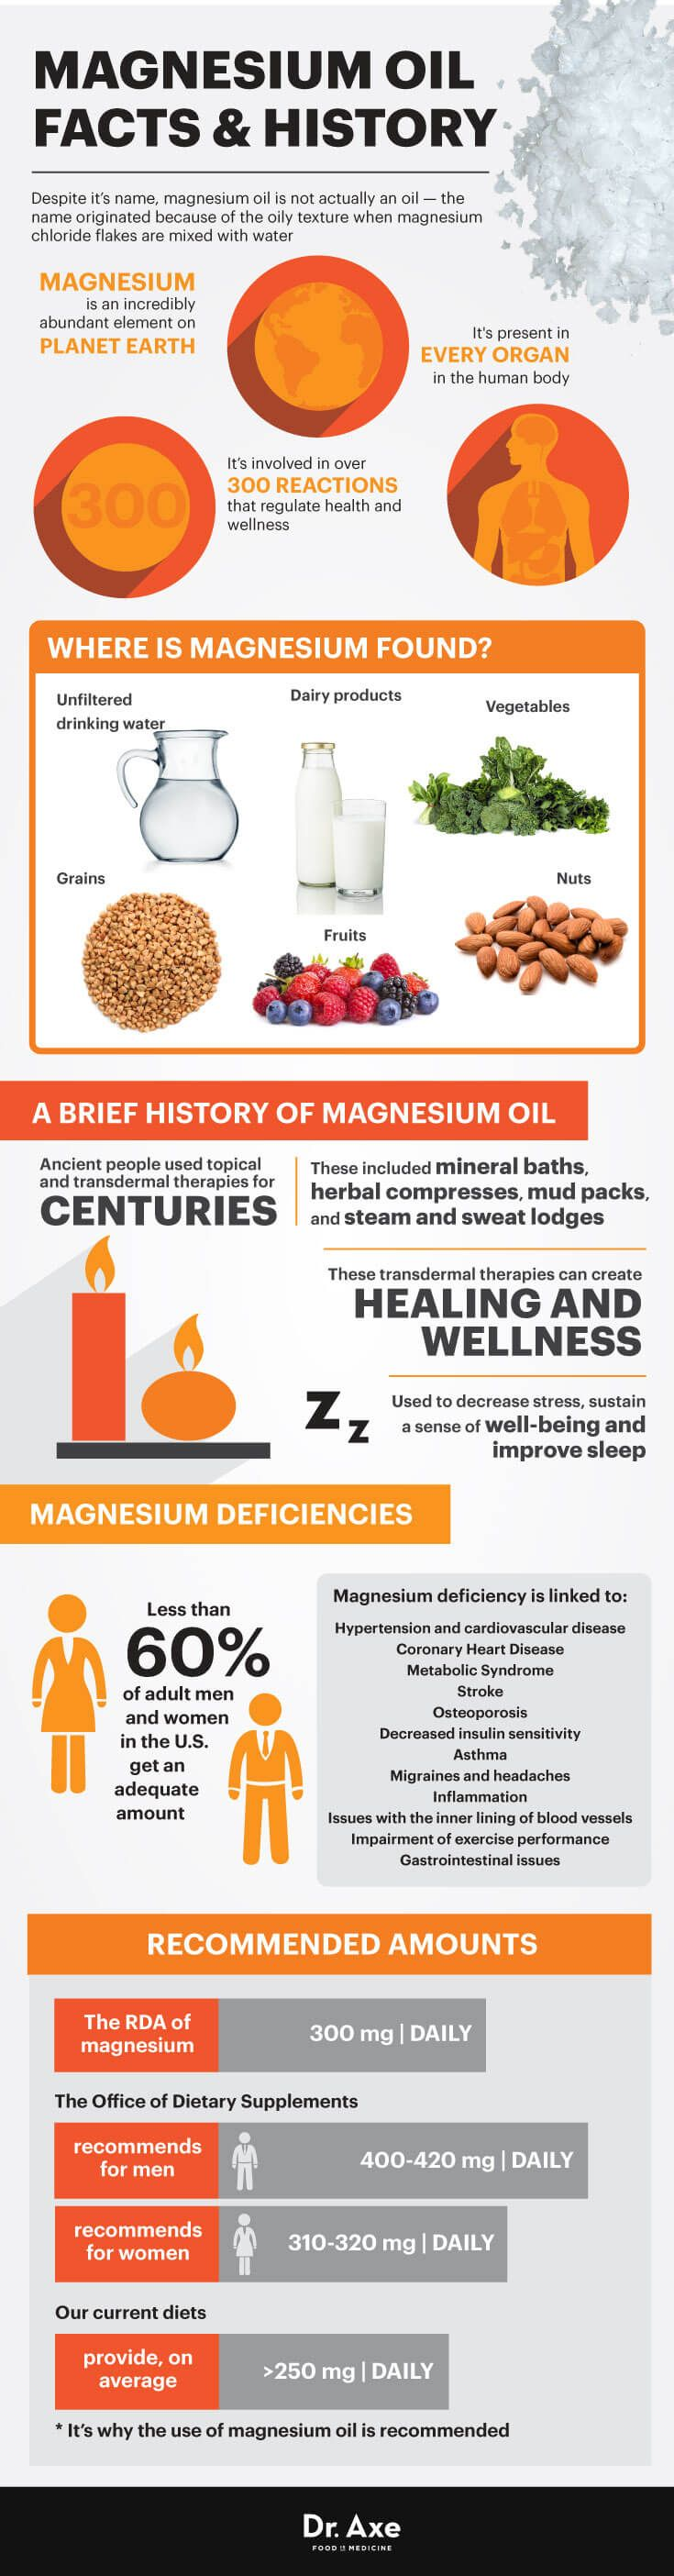 Magnesium is an essential mineral yet deficiency is widespread. Here's how to use transdermal magnesium oil benefits for better health.